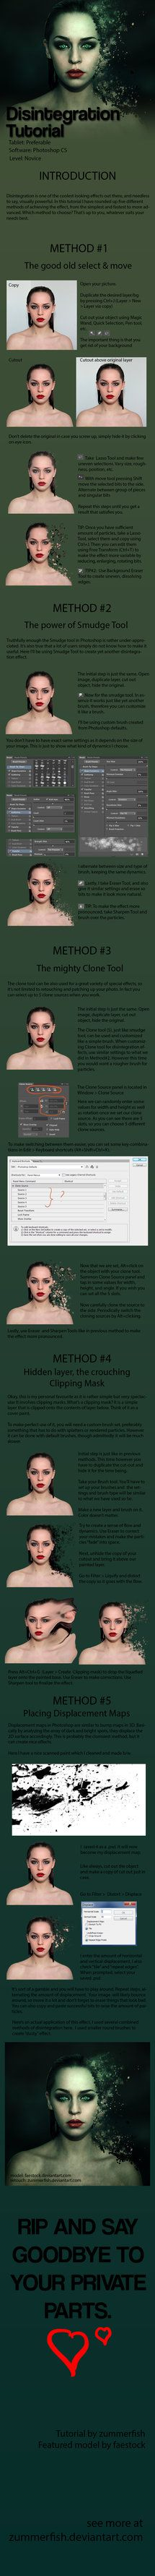 Disintegration Effect Tutorial by zummerfish.deviantart.com on @DeviantArt